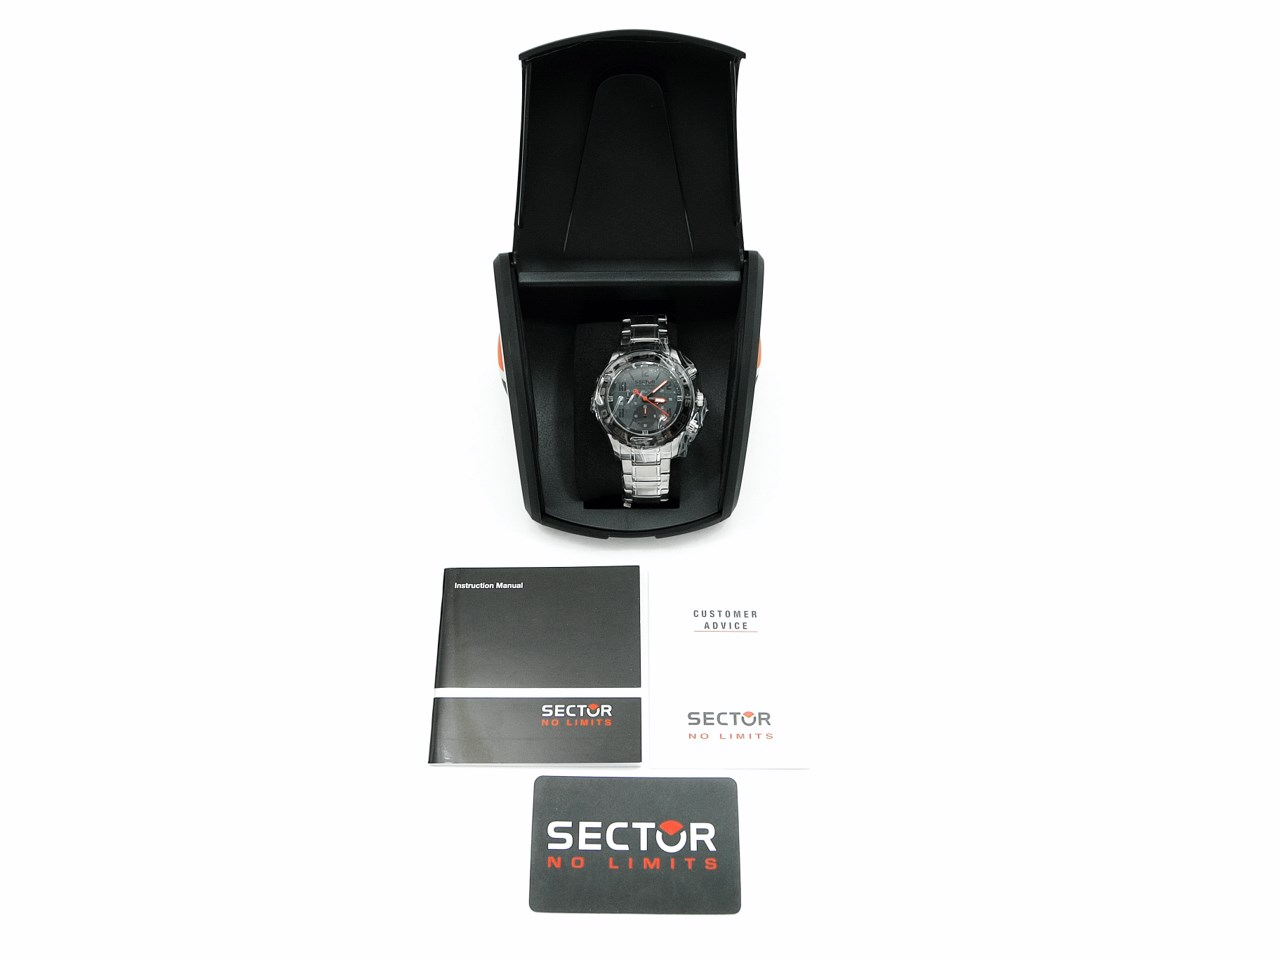 Sector adv 5500 3s10 youtube.